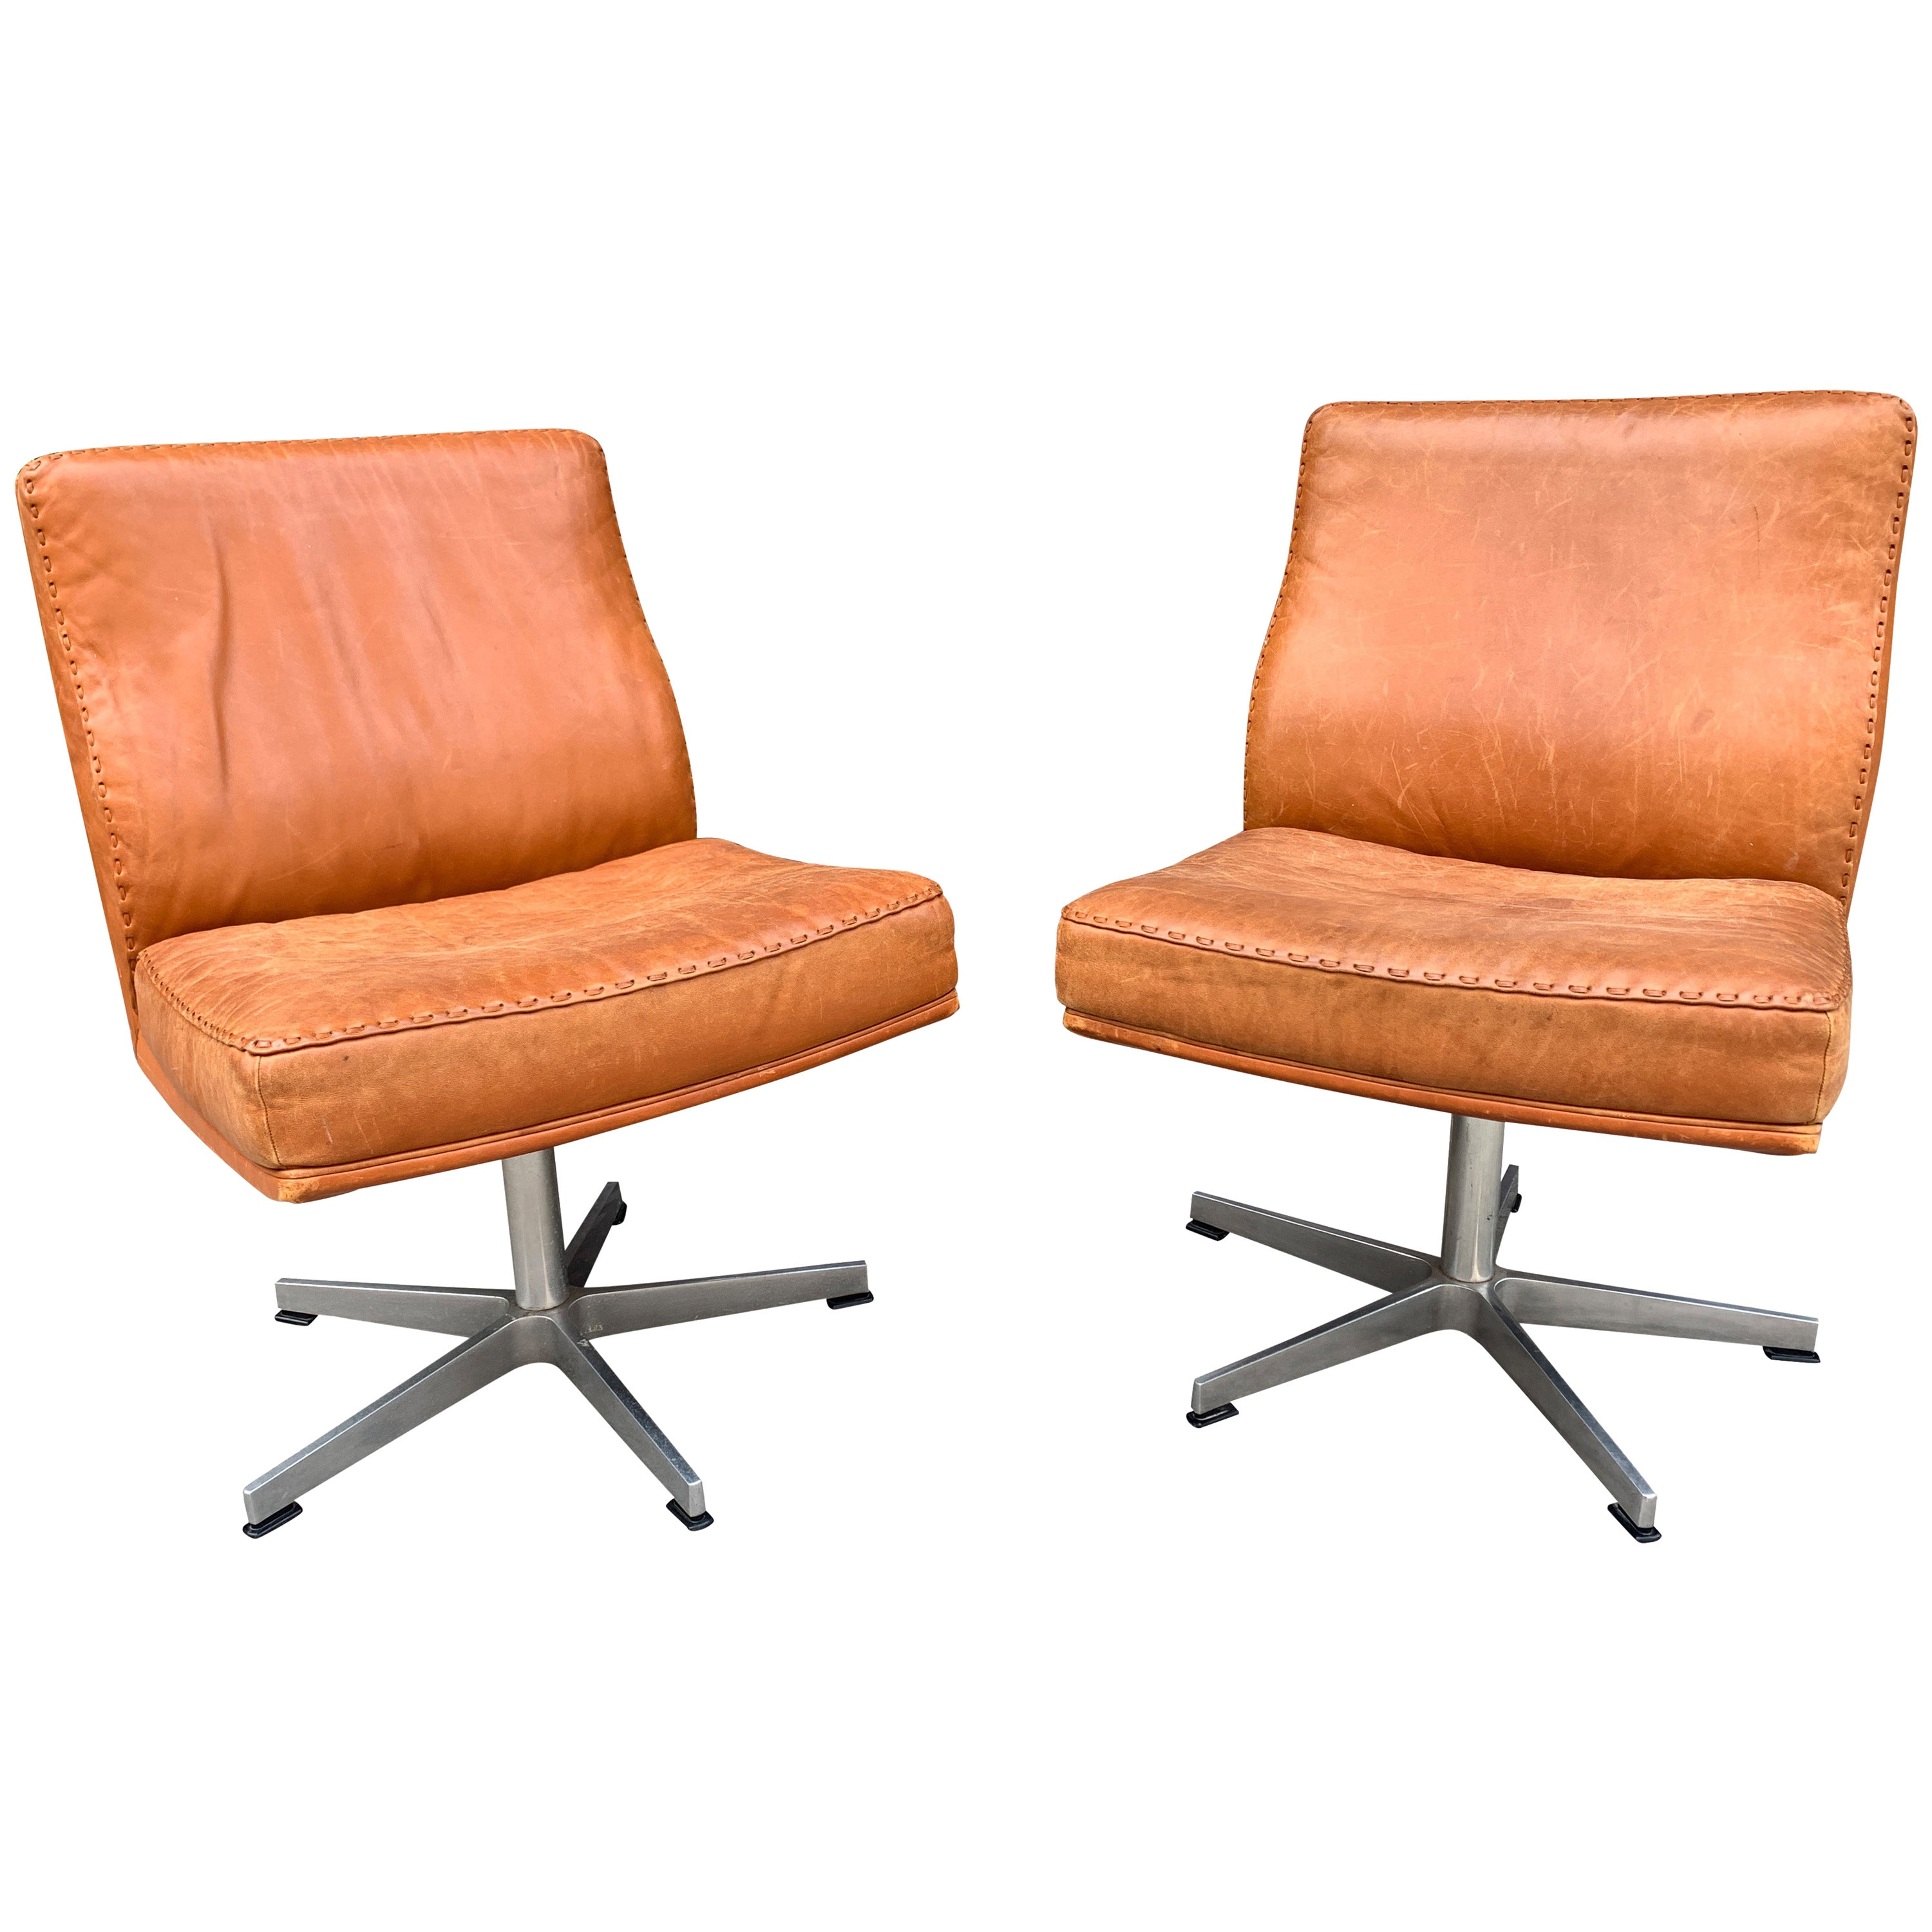 Pair of Vintage Leather Office Chairs